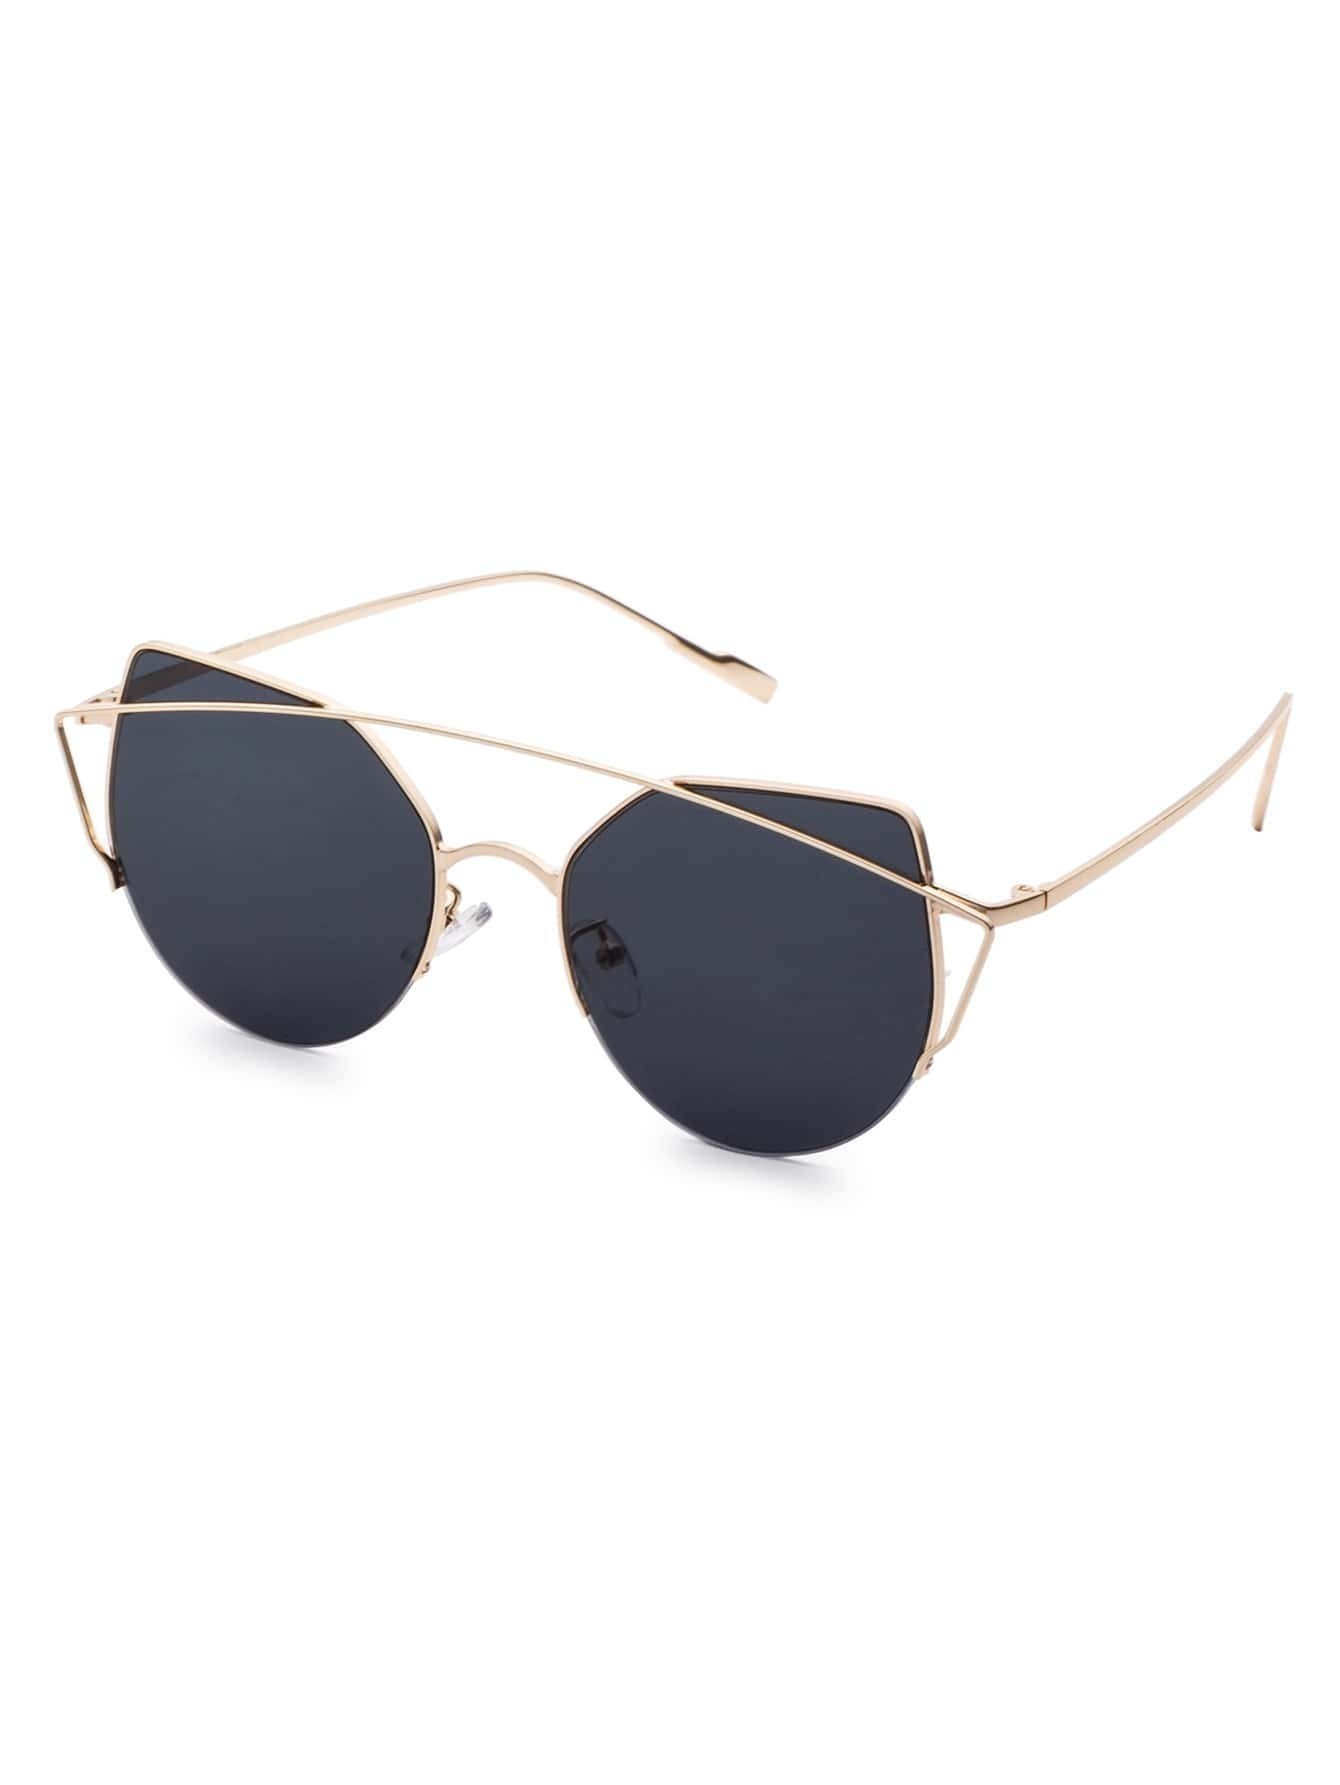 Gold Frame Double Bridge Black Cat Eye Sunglasses ...